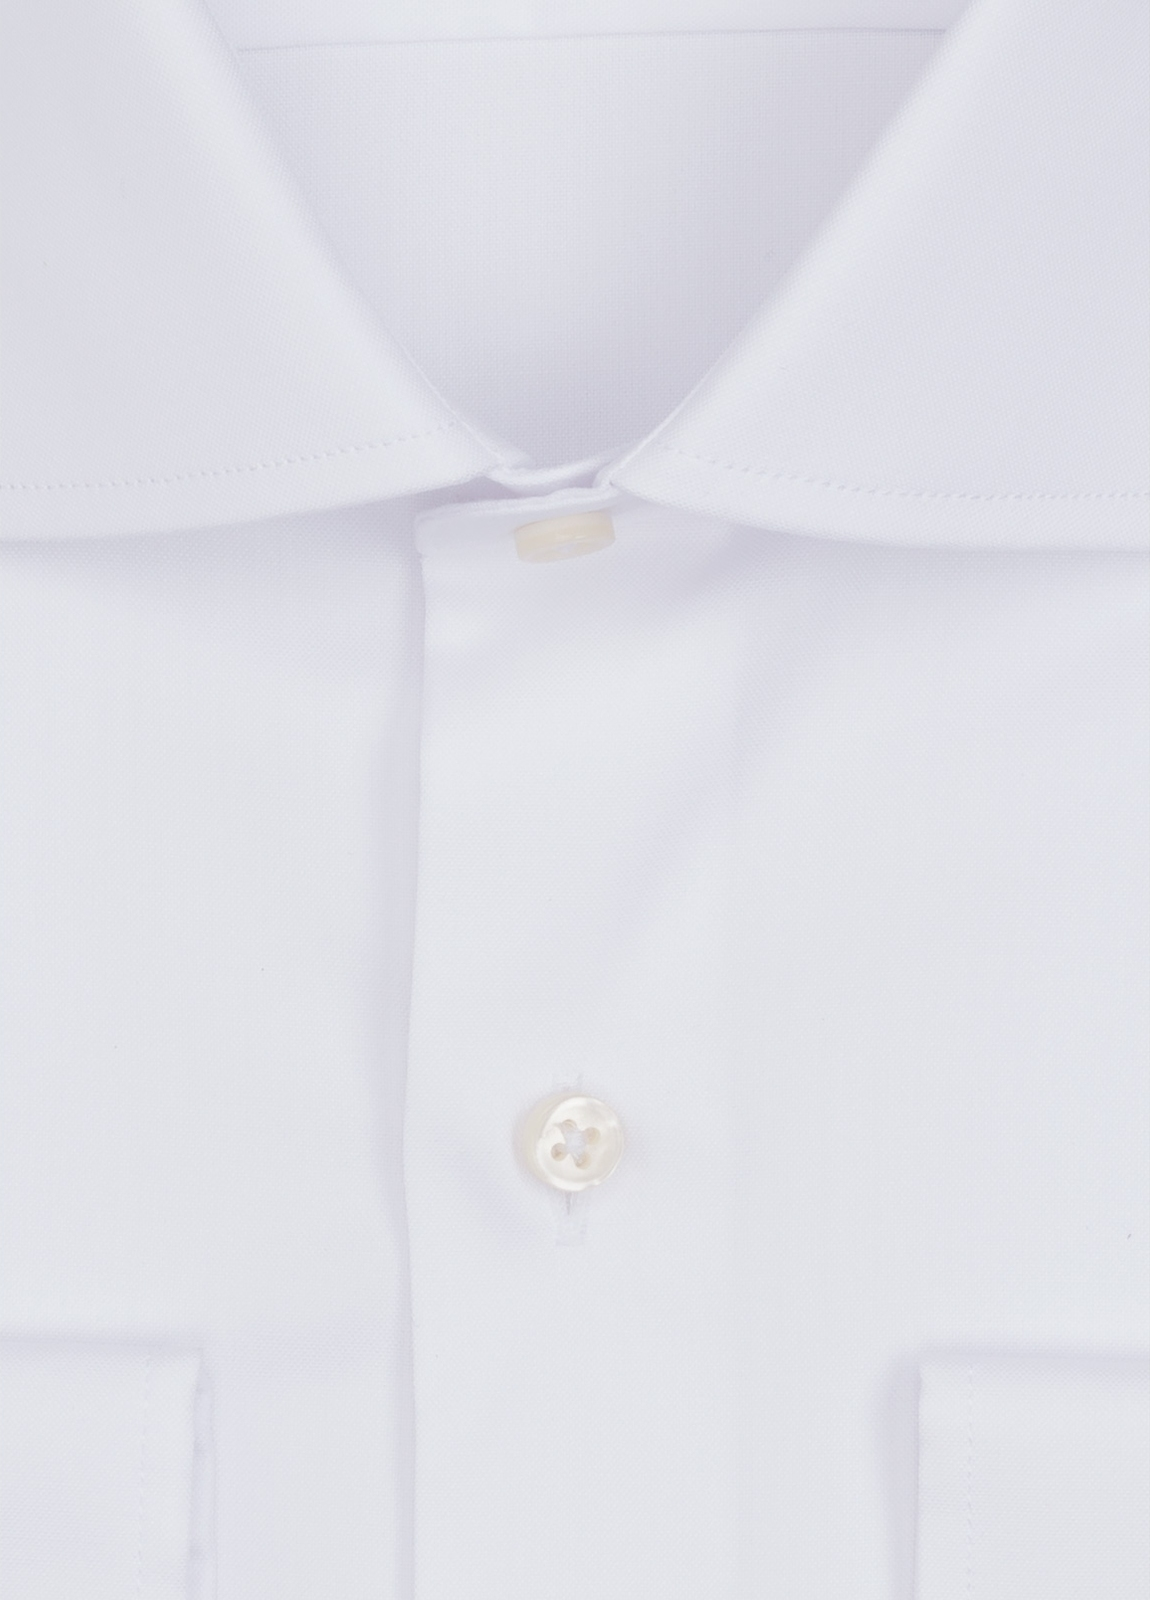 Camisa Formal Wear REGULAR FIT cuello italiano modelo TAILORED NAPOLI color blanco. 100% Algodón. - Ítem1